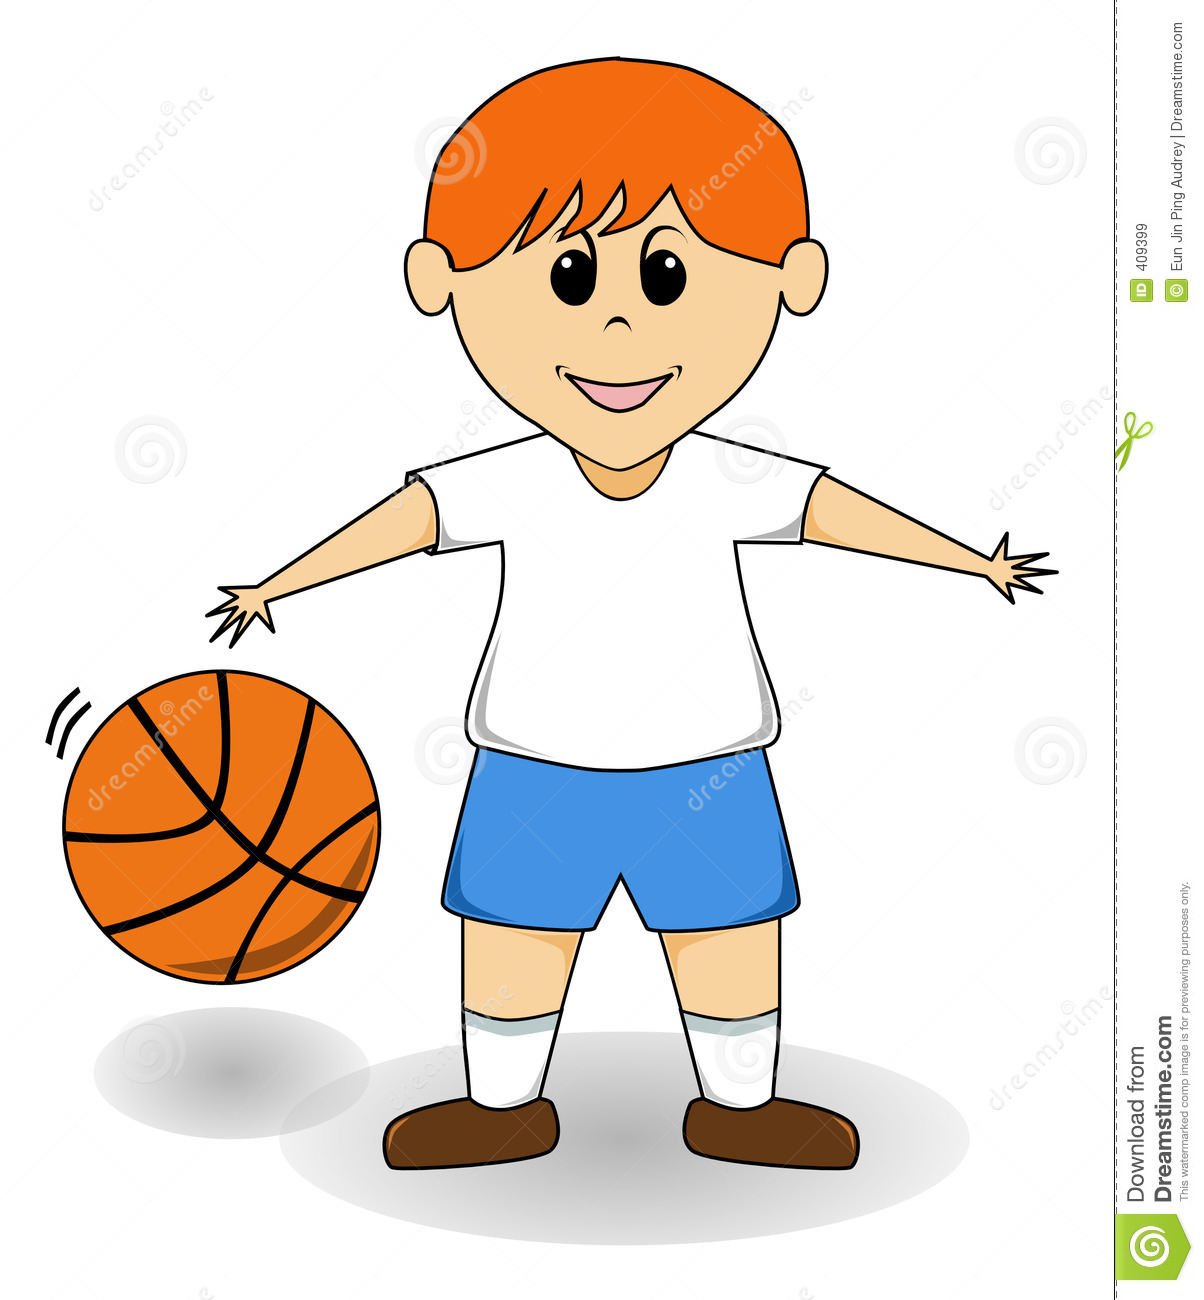 Cartoon Boy - Basketball Royalty Free Stock Images - Image ...